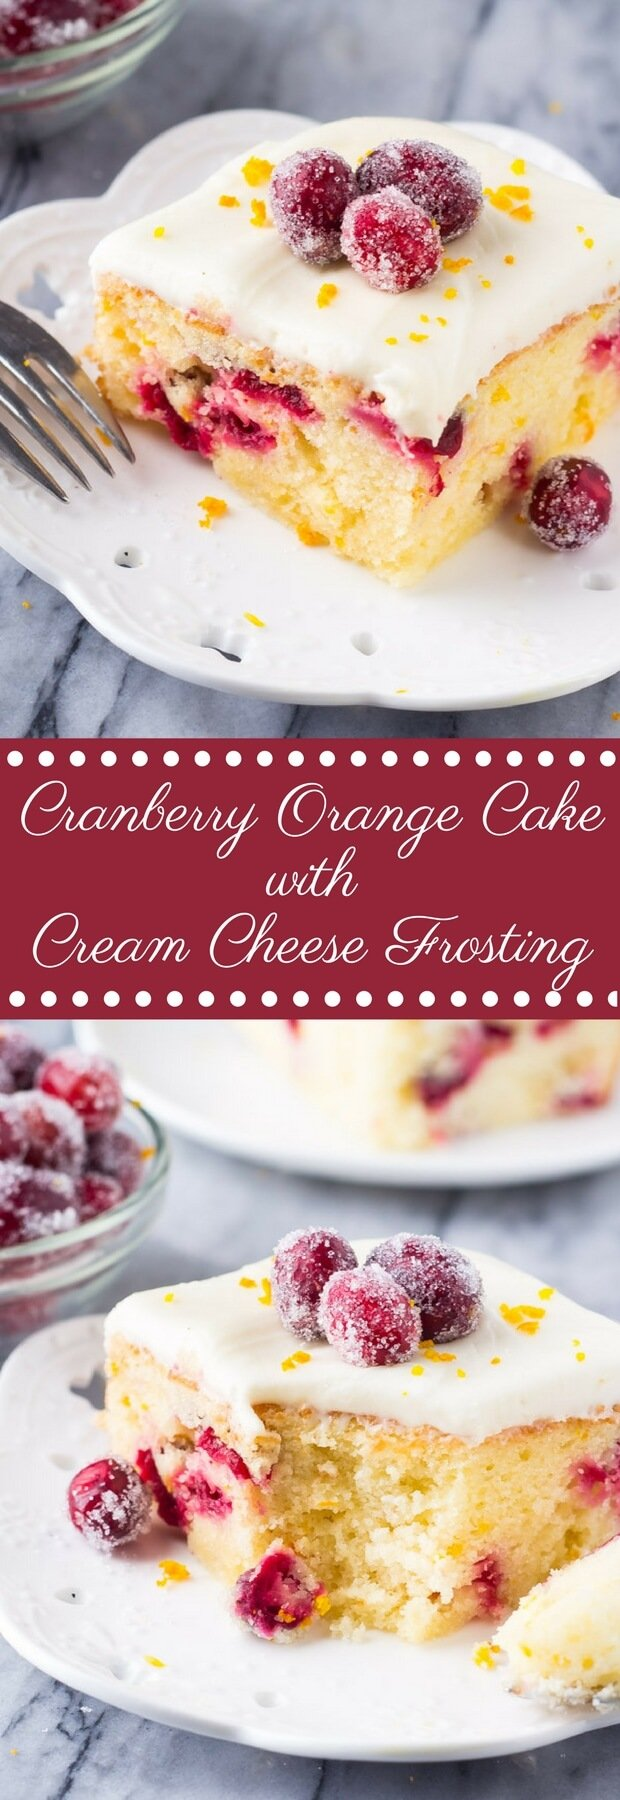 A deliciously soft Cranberry Orange Cake with Cream Cheese Frosting. Bursting with fresh oranges & dotted with tart cranberries